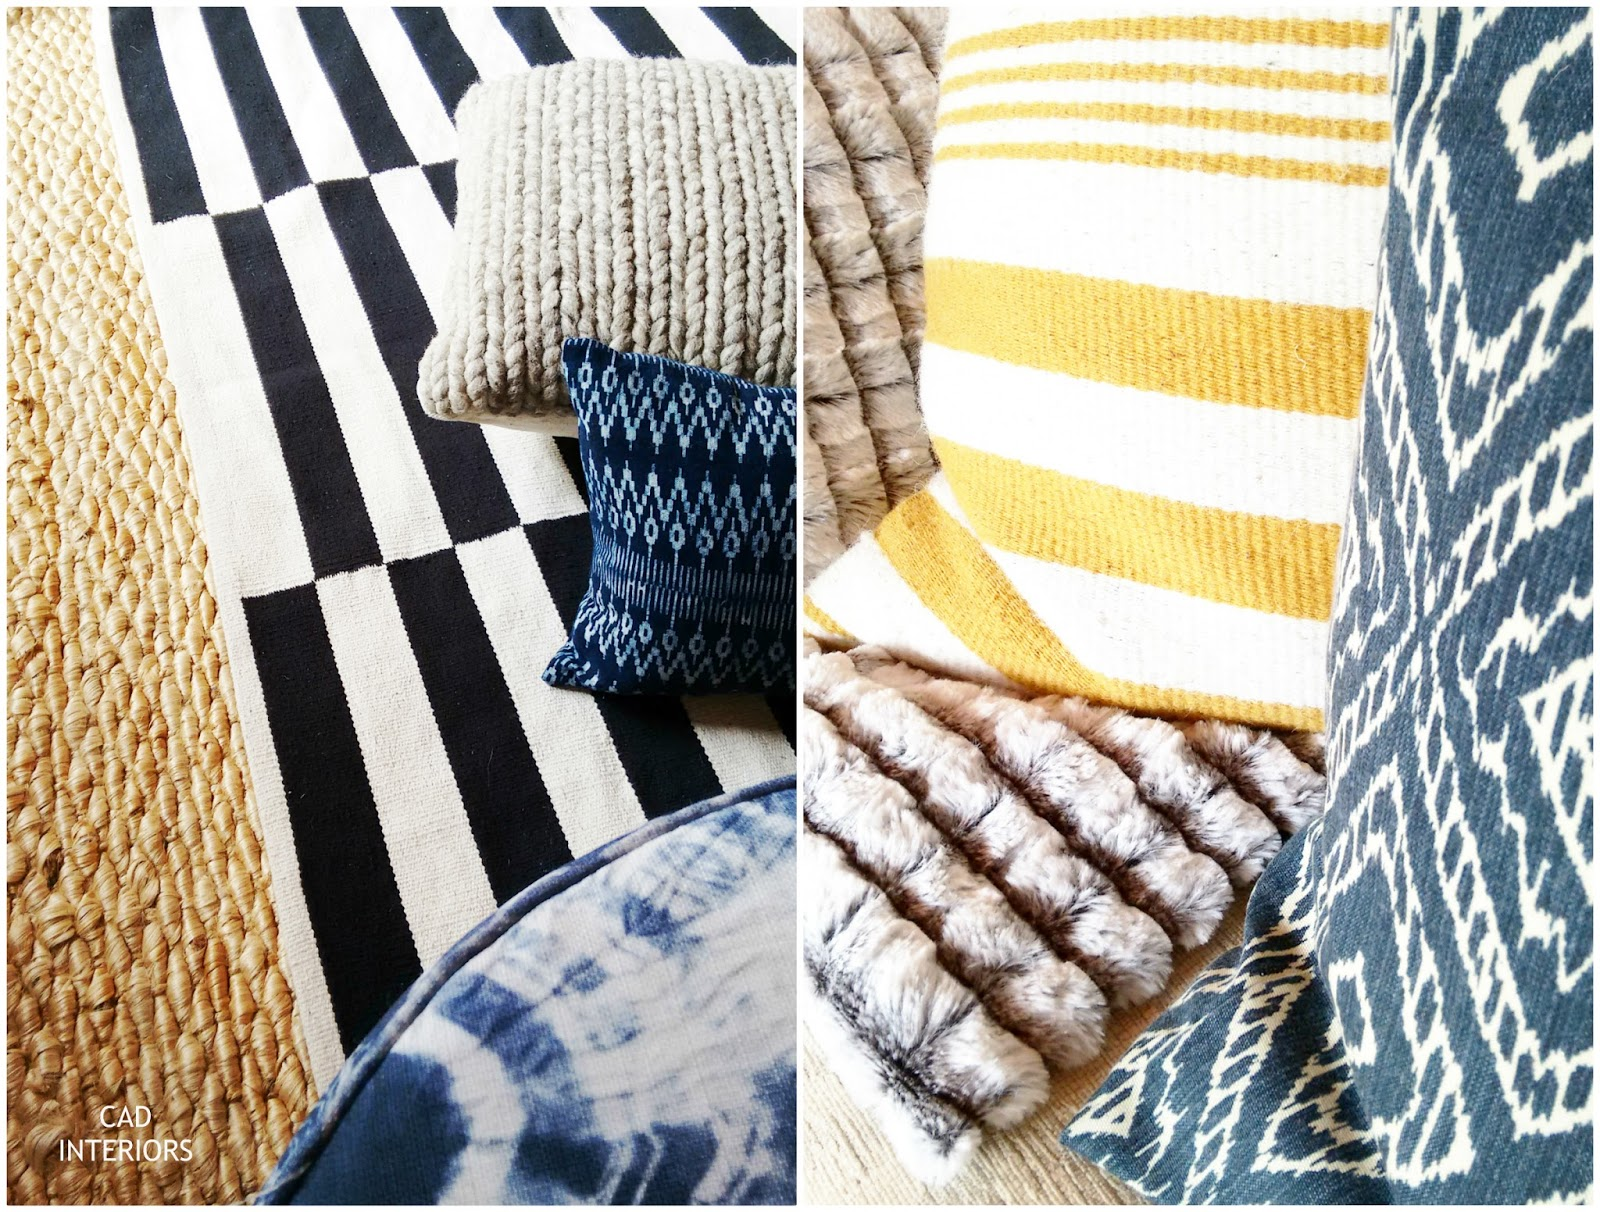 Jute Rug Striped Wool Rug Indigo Ikat Pillow Textures Patterns Home Decor  Accessories CAD INTERIORS Family